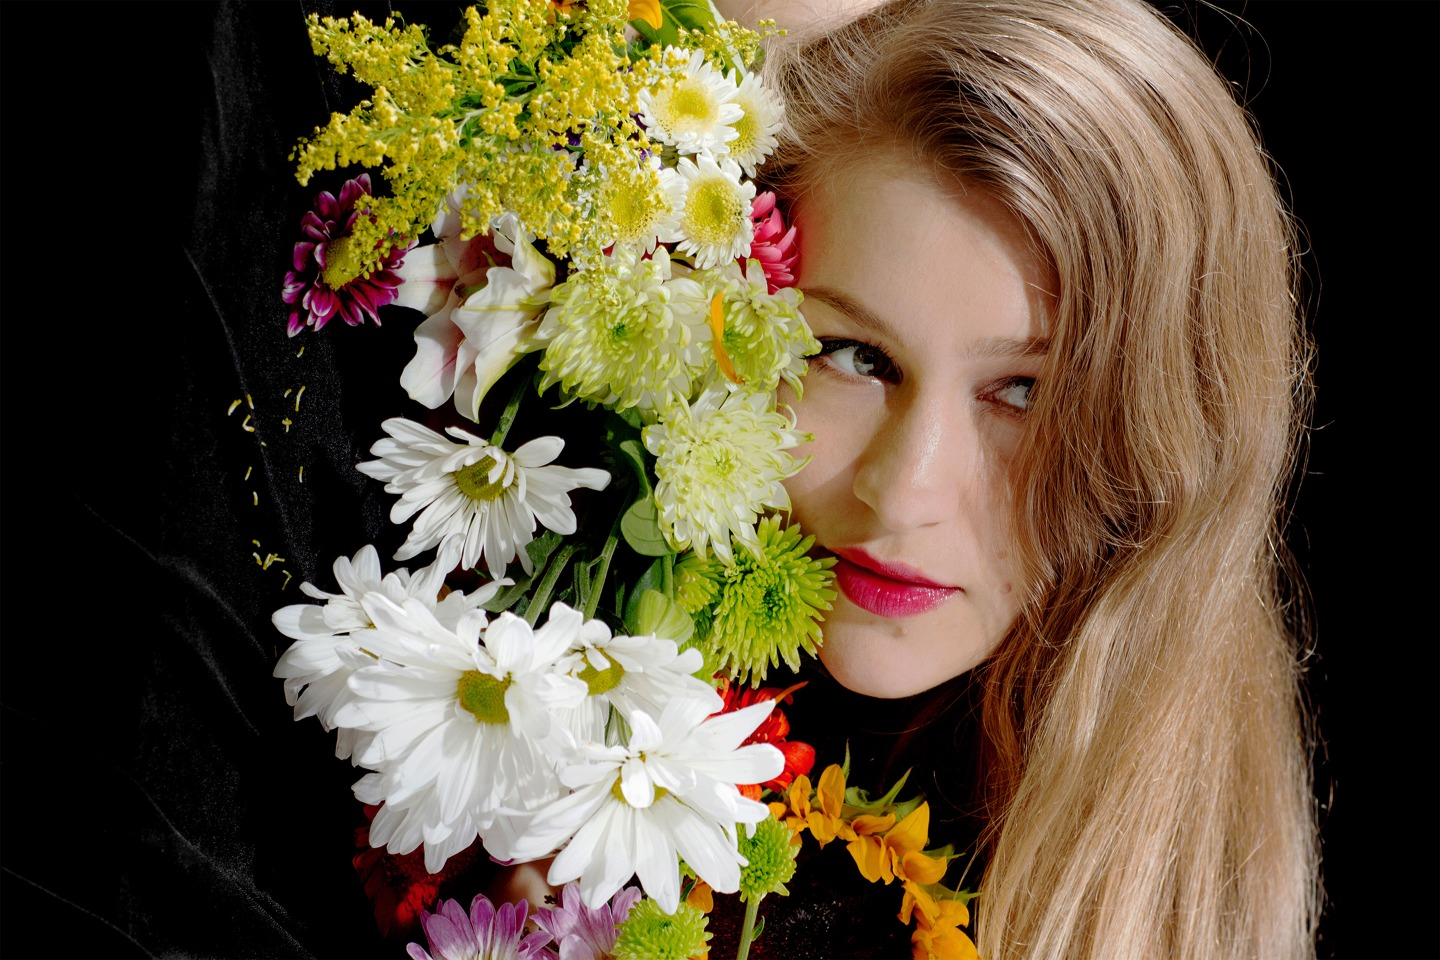 A Conversation With Joanna Newsom